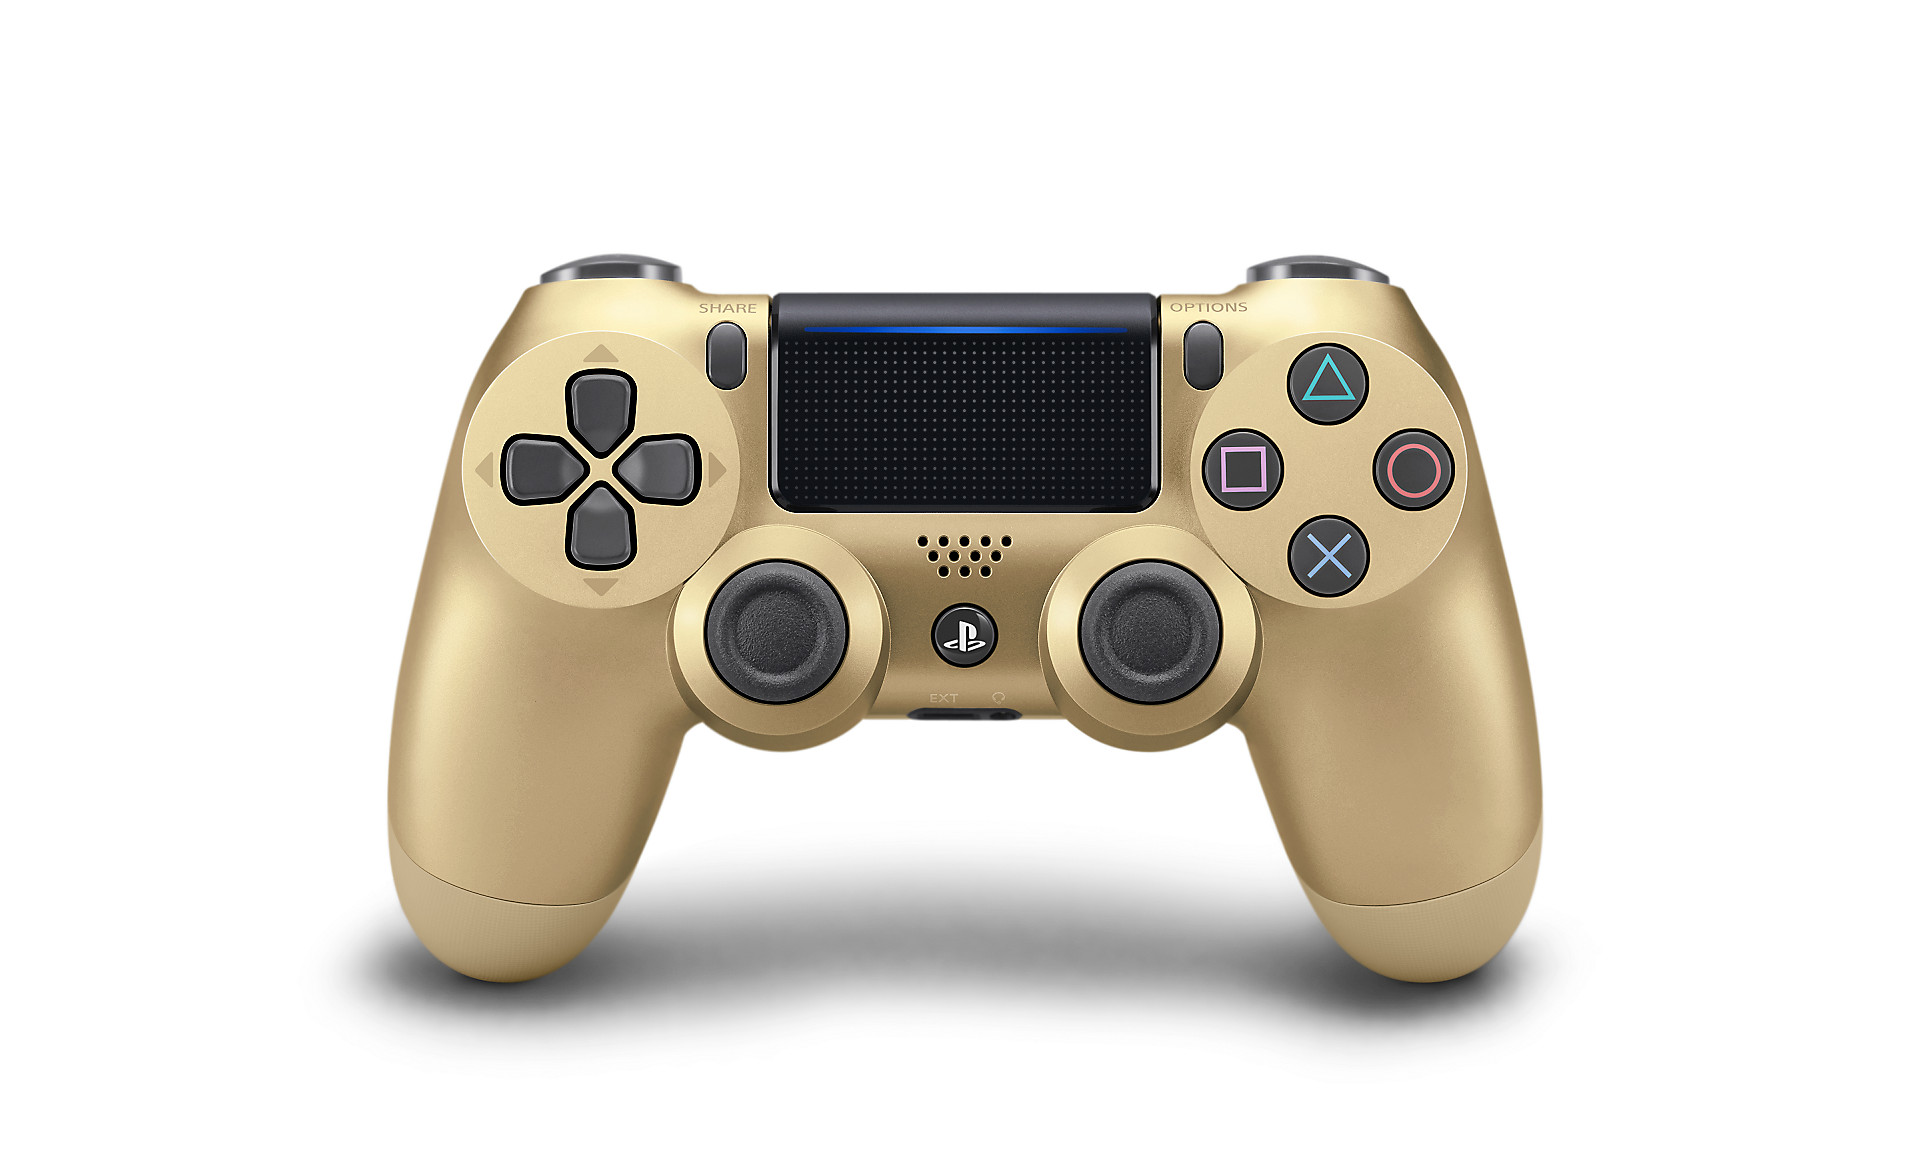 金色DUALSHOCK 4 - PlayStation周边设备